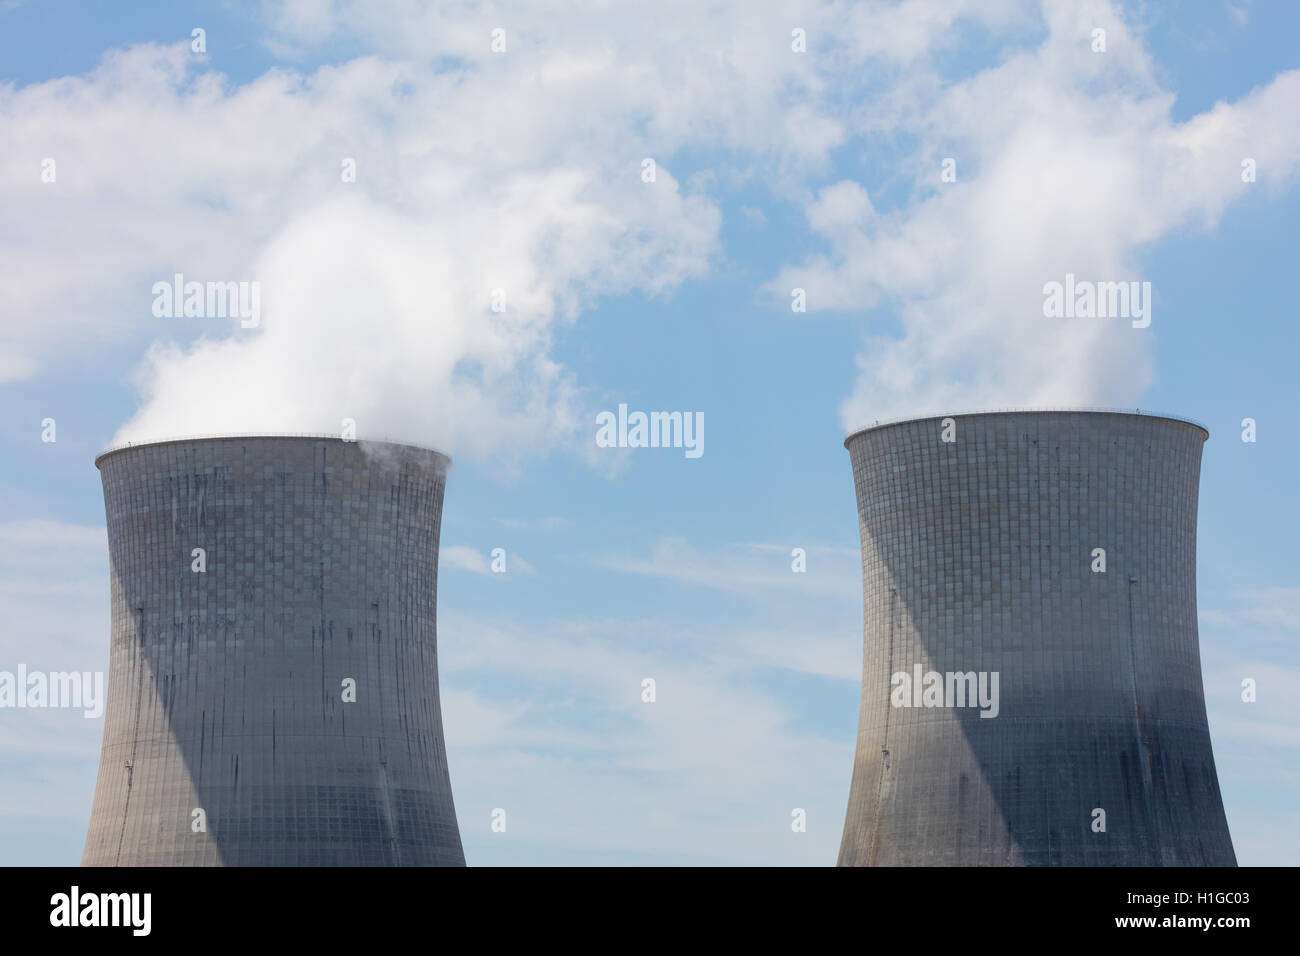 Two cooling towers at a nuclear power plant - Stock Image